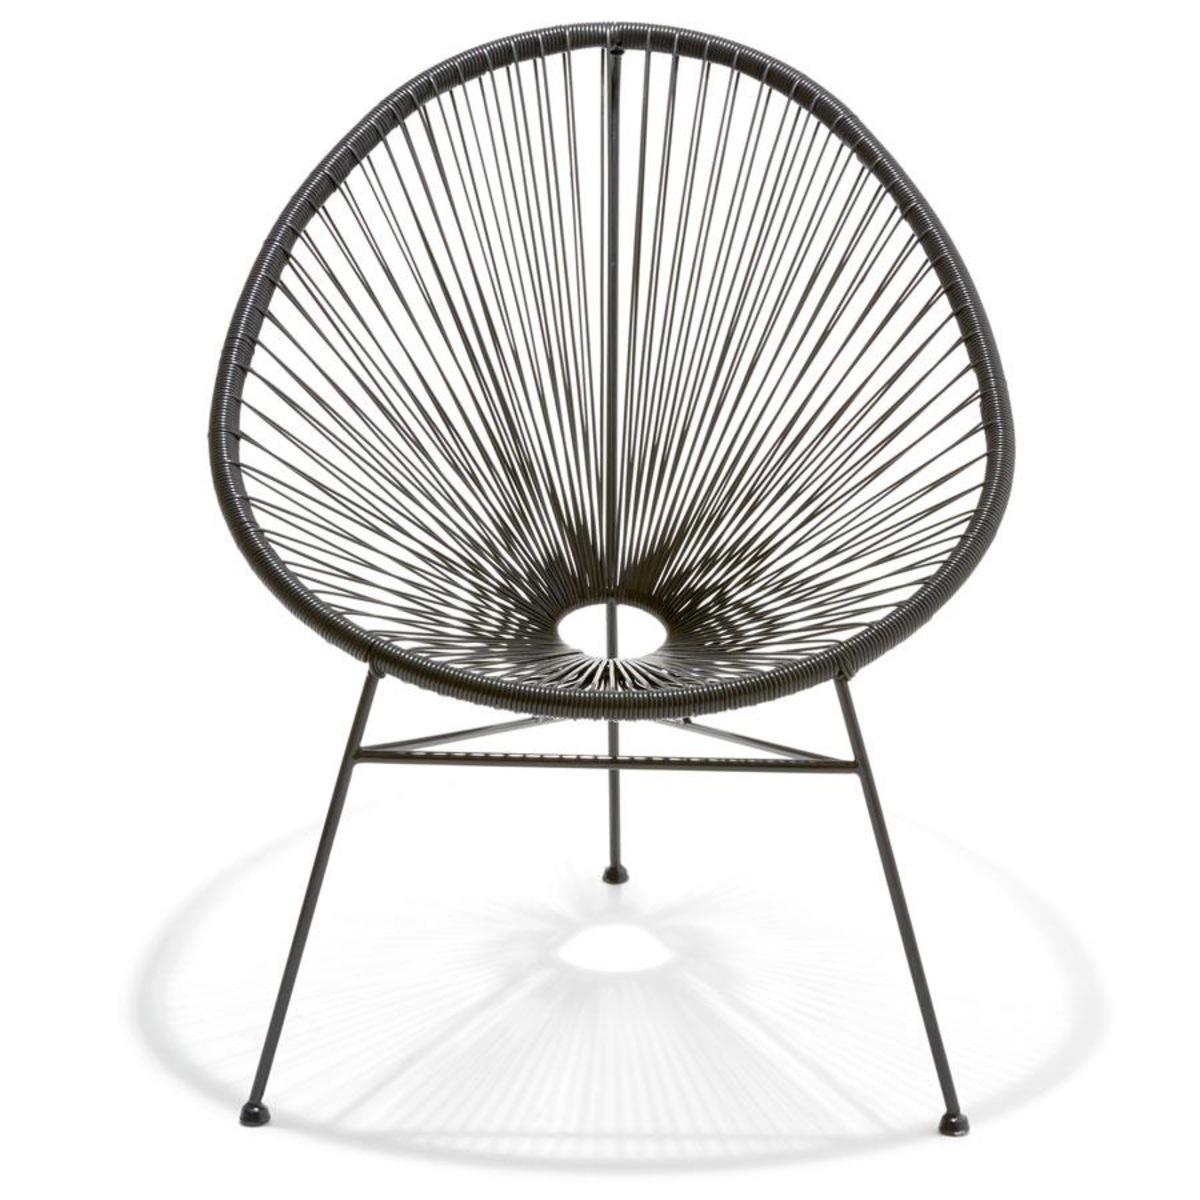 Egg Chair Adelaide Acapulco Replica Chair Black Kmart